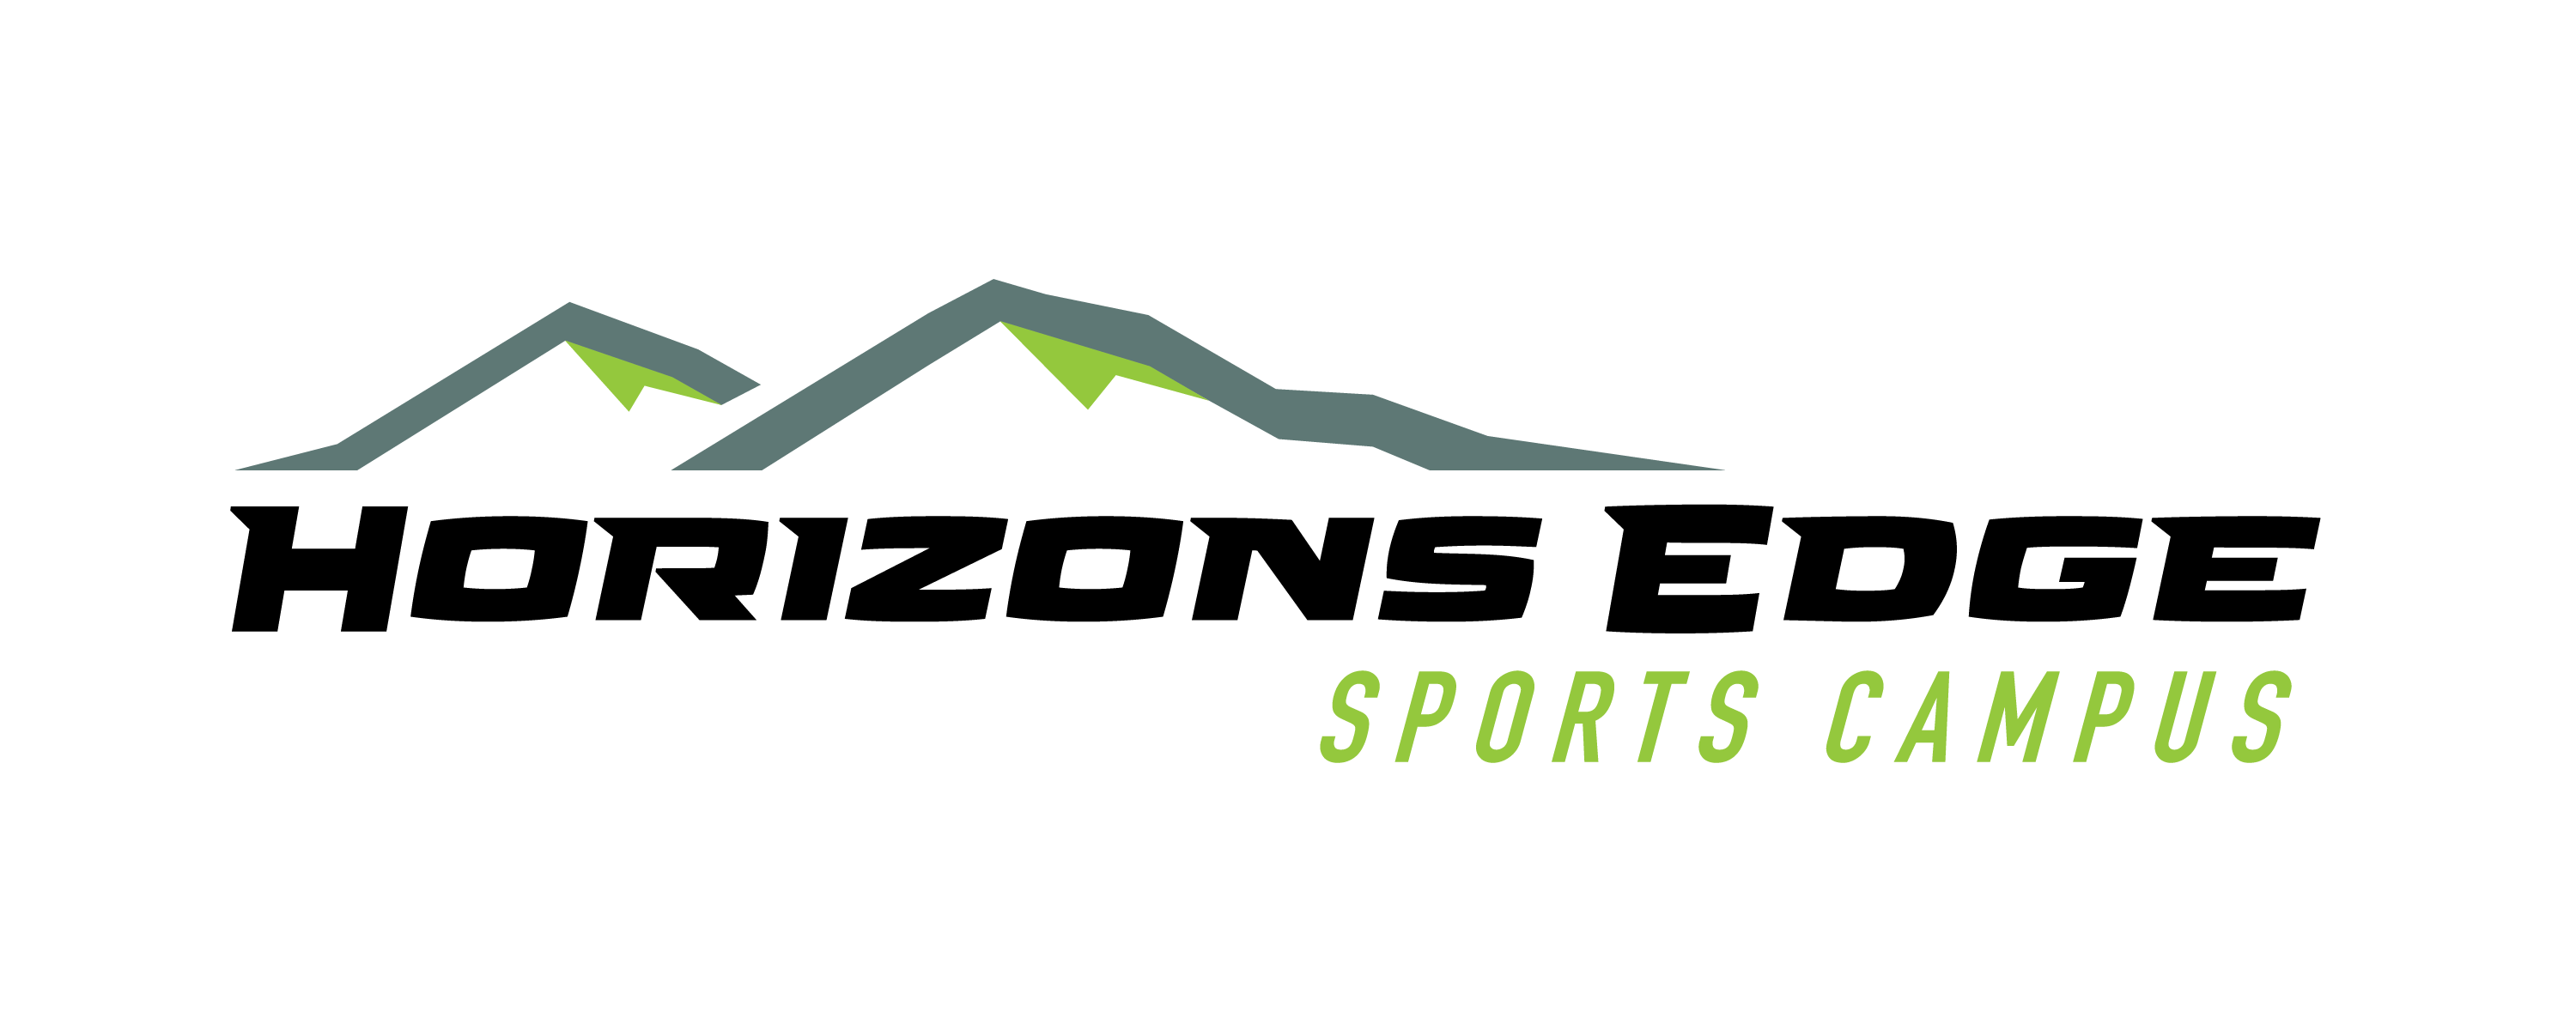 Horizons Edge Sports Campus